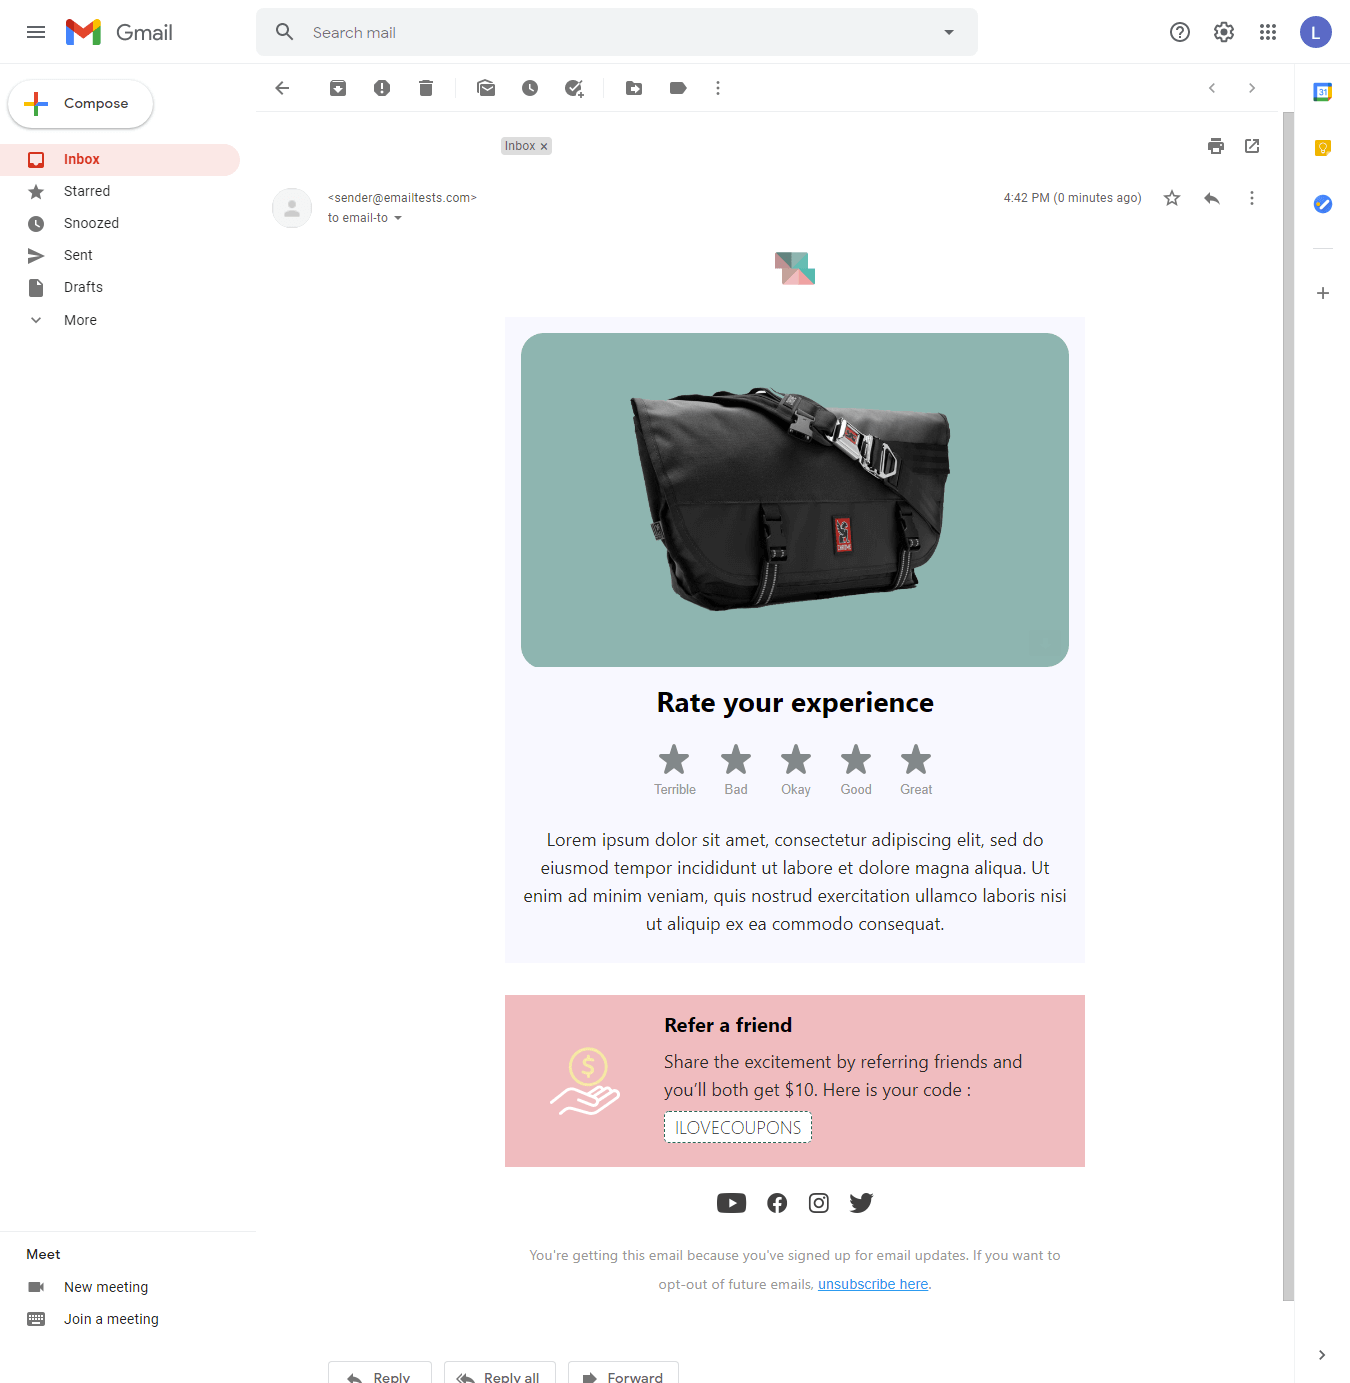 Screenshot of Simplicity review email display on Gmail